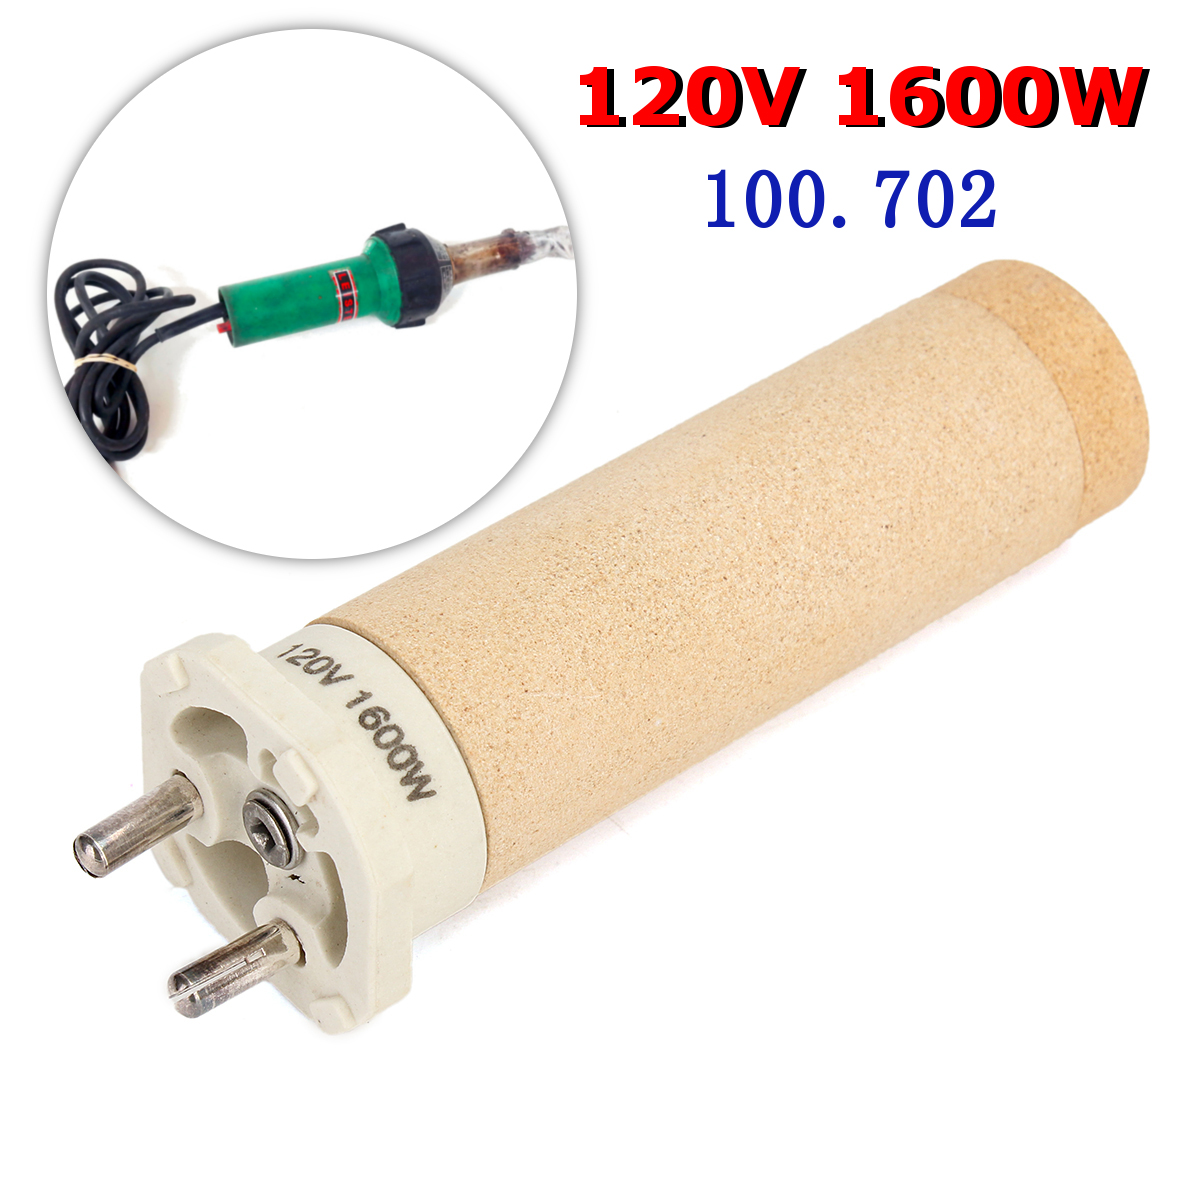 Meigar 120V 1600W Heating Element Welding NT100.702 Ceramic For DIODE S Hot